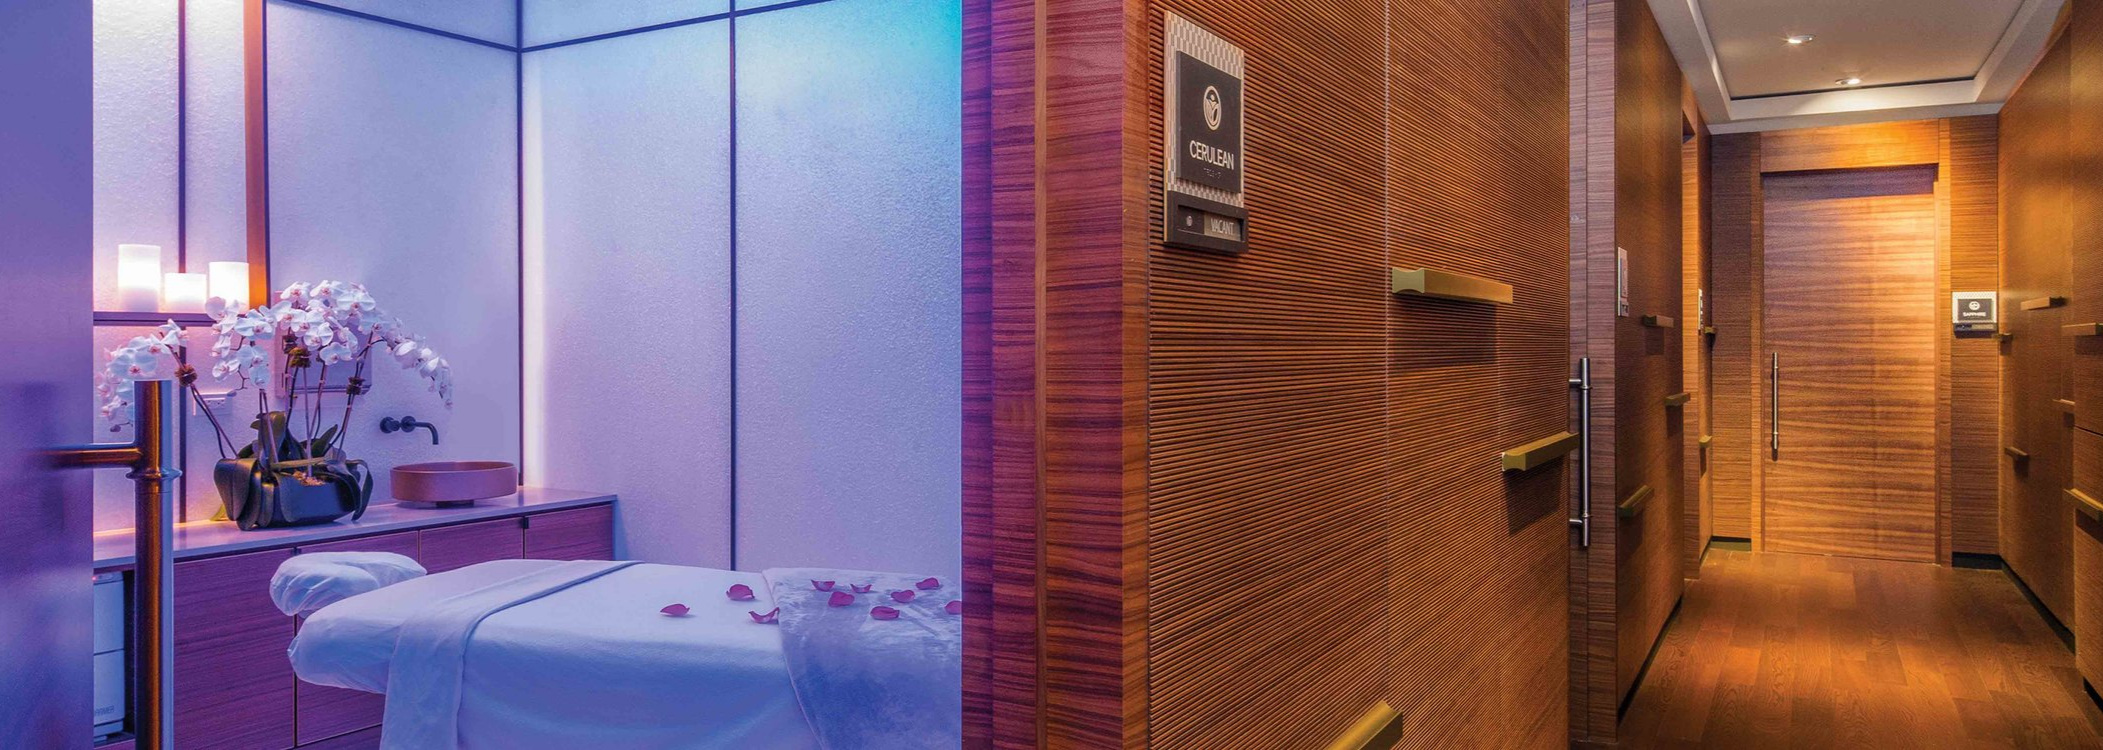 massage-room-detail-billboard-3200x960-xl.jpg